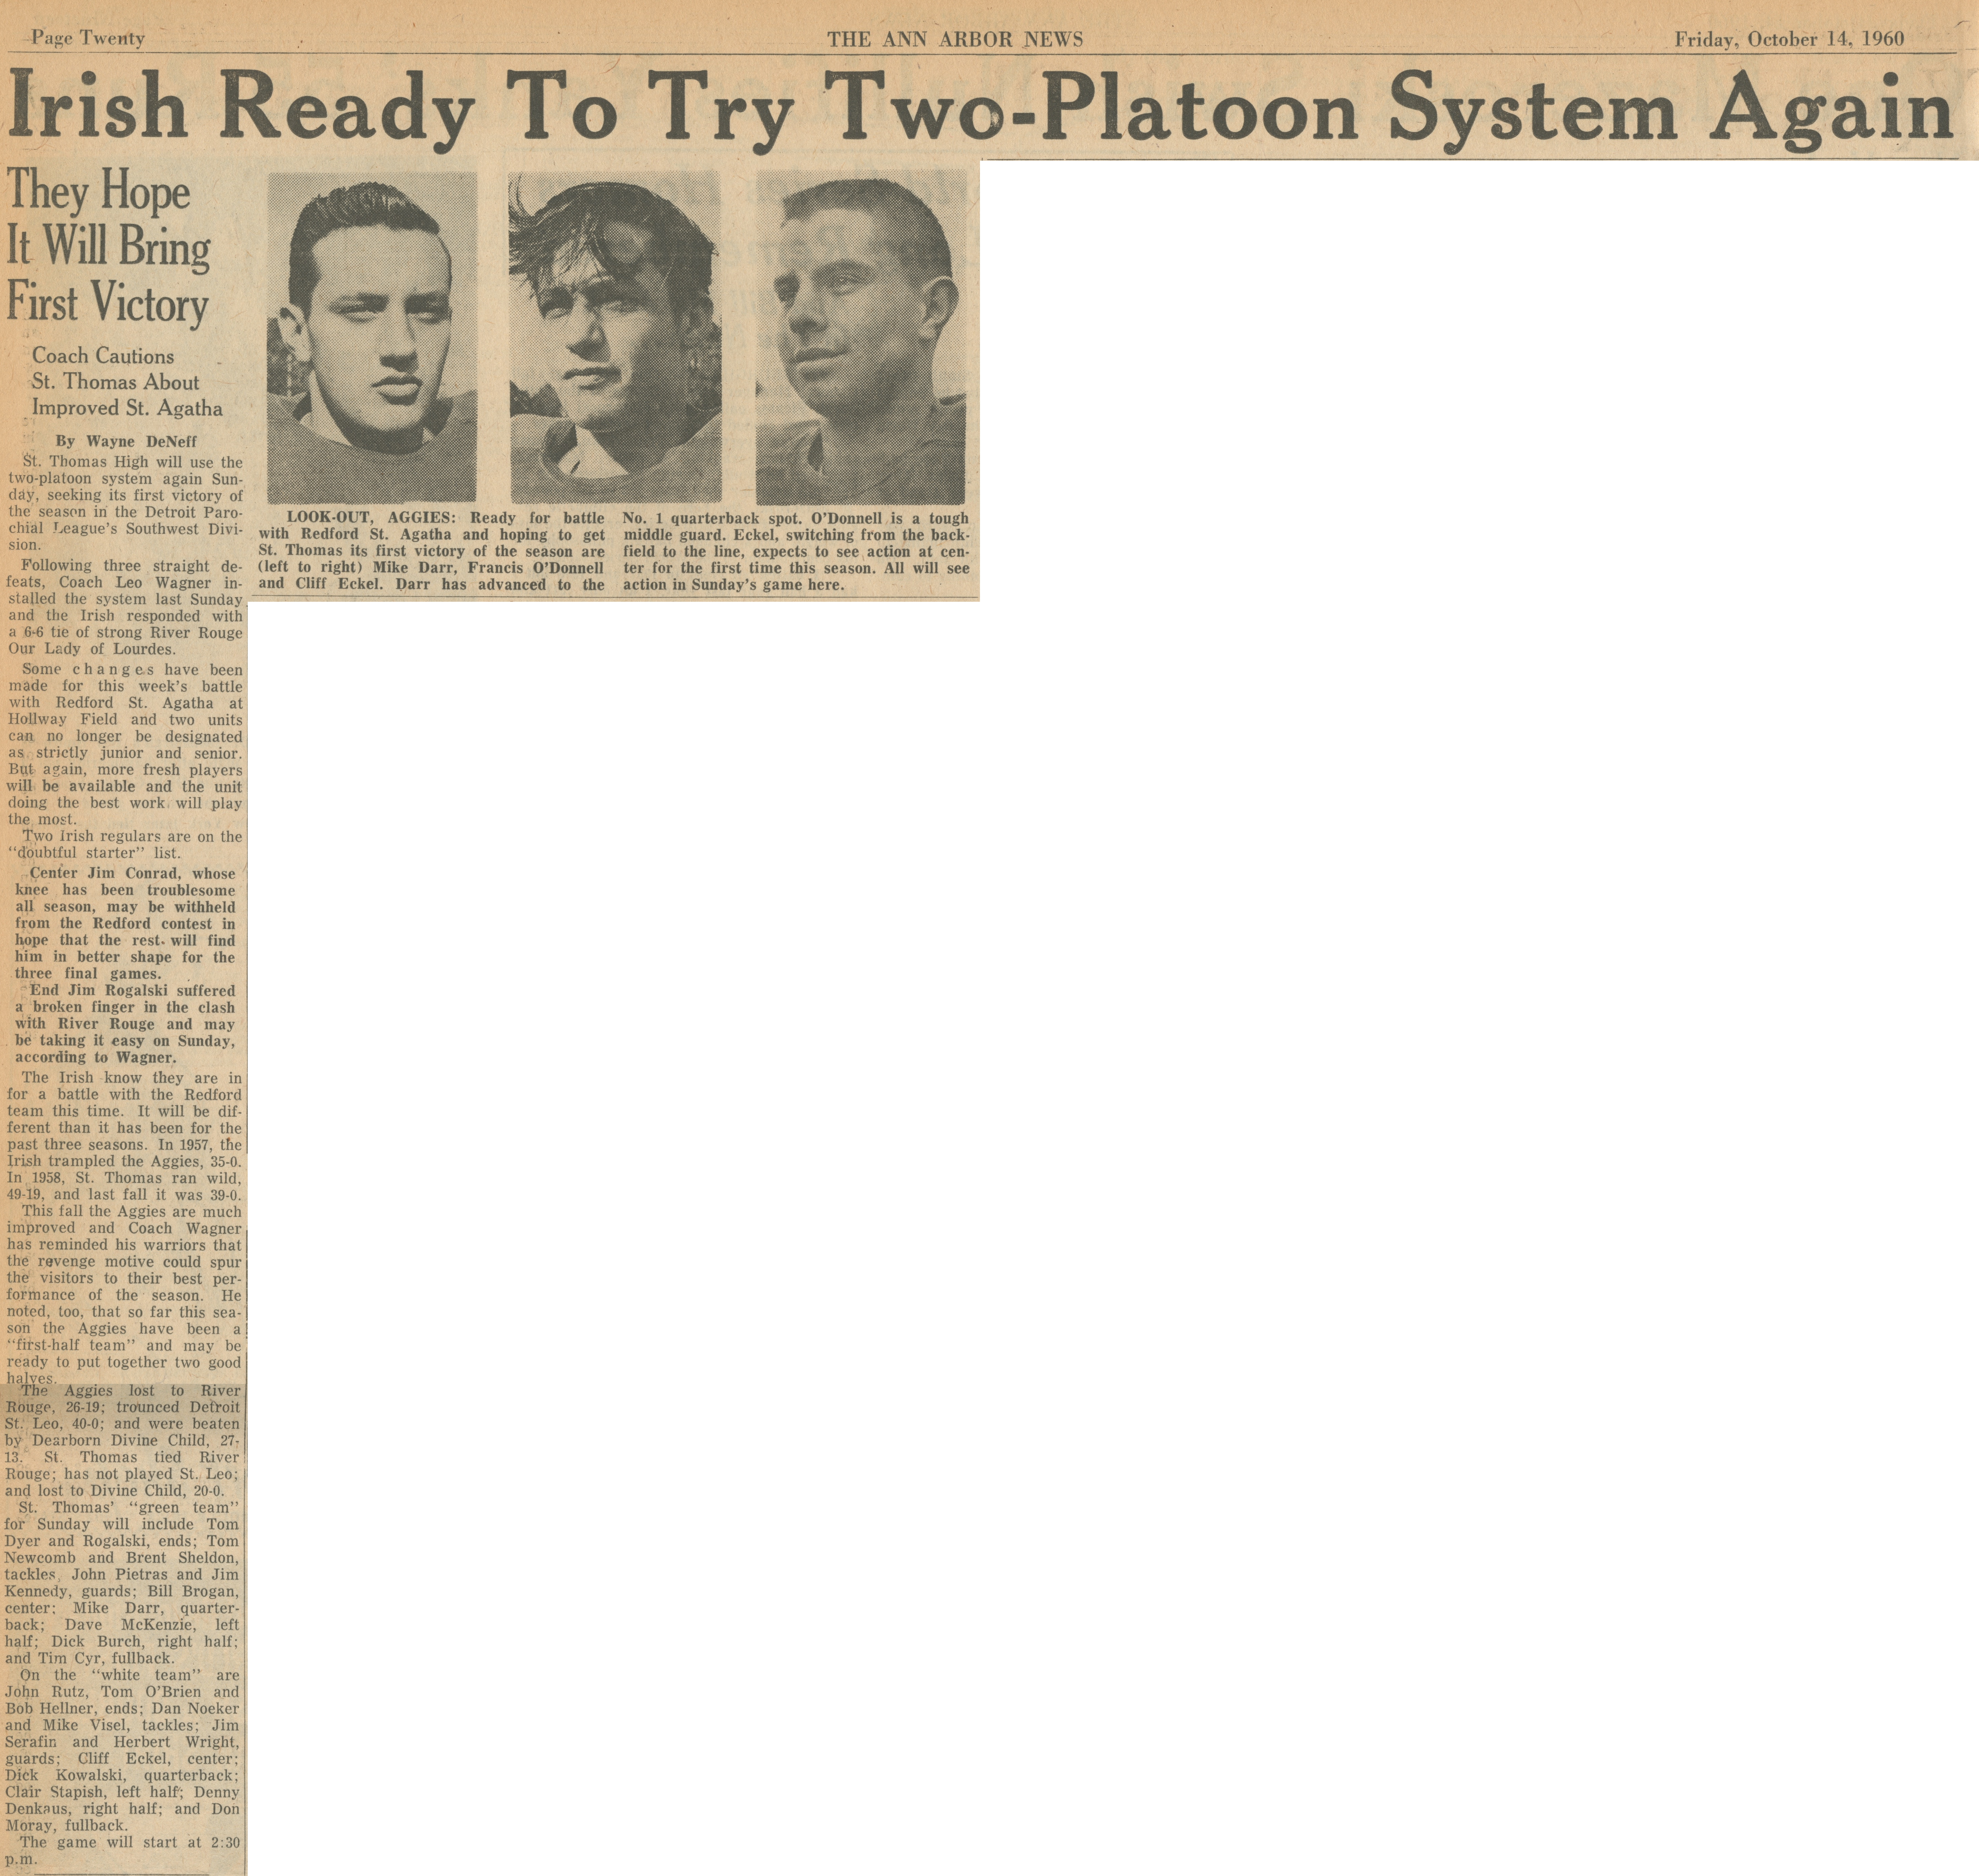 Irish Ready To Try Two-Platoon System Again image